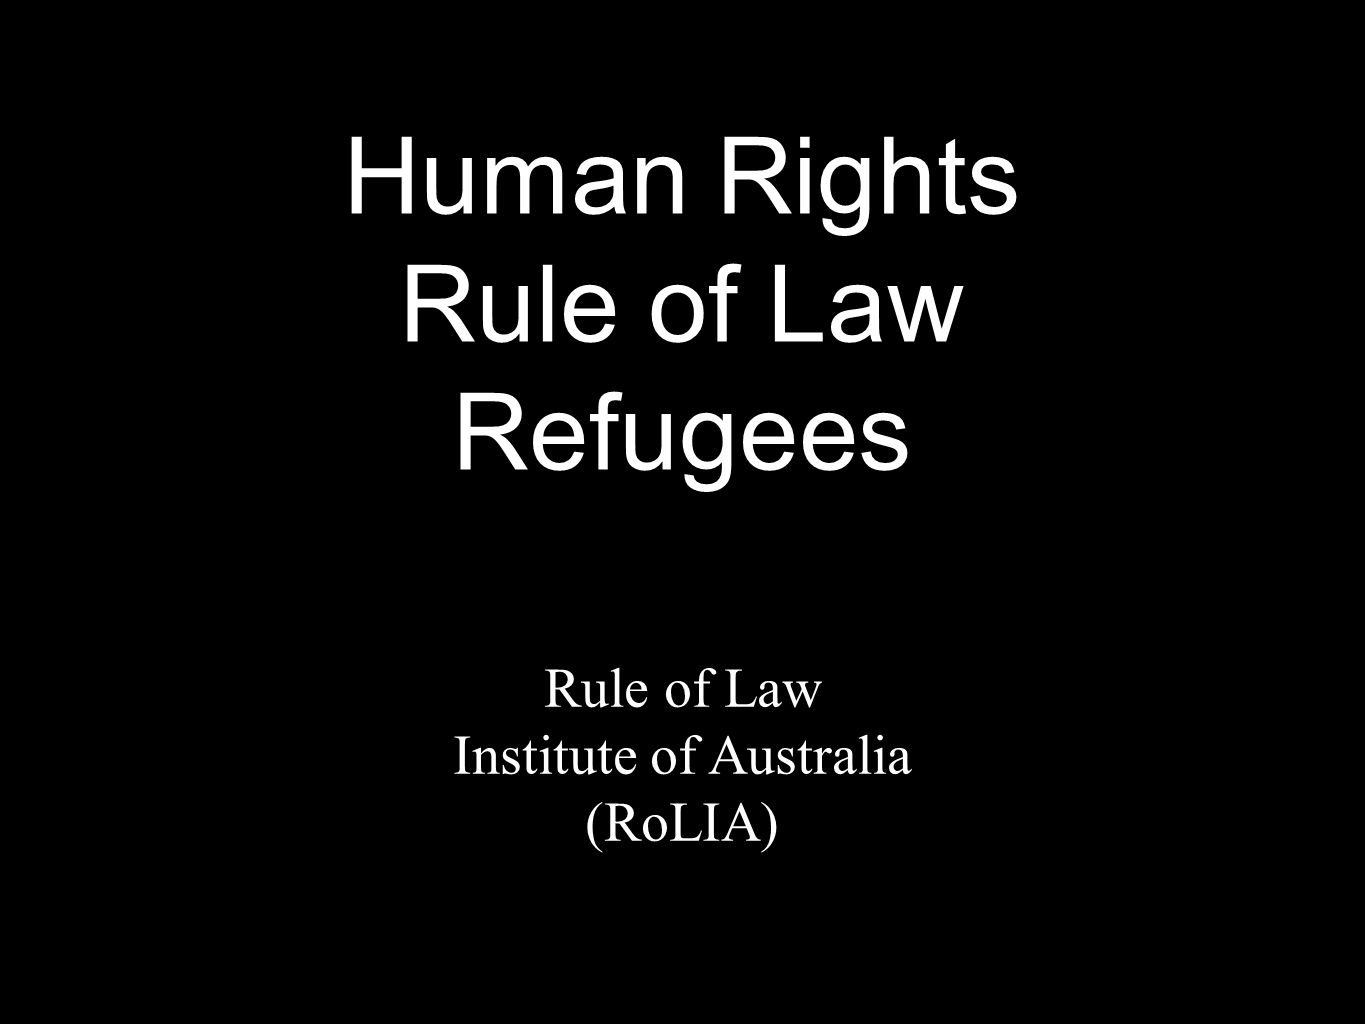 ruleoflaw.org.au Thank you. Rule of Law Institute of Australia